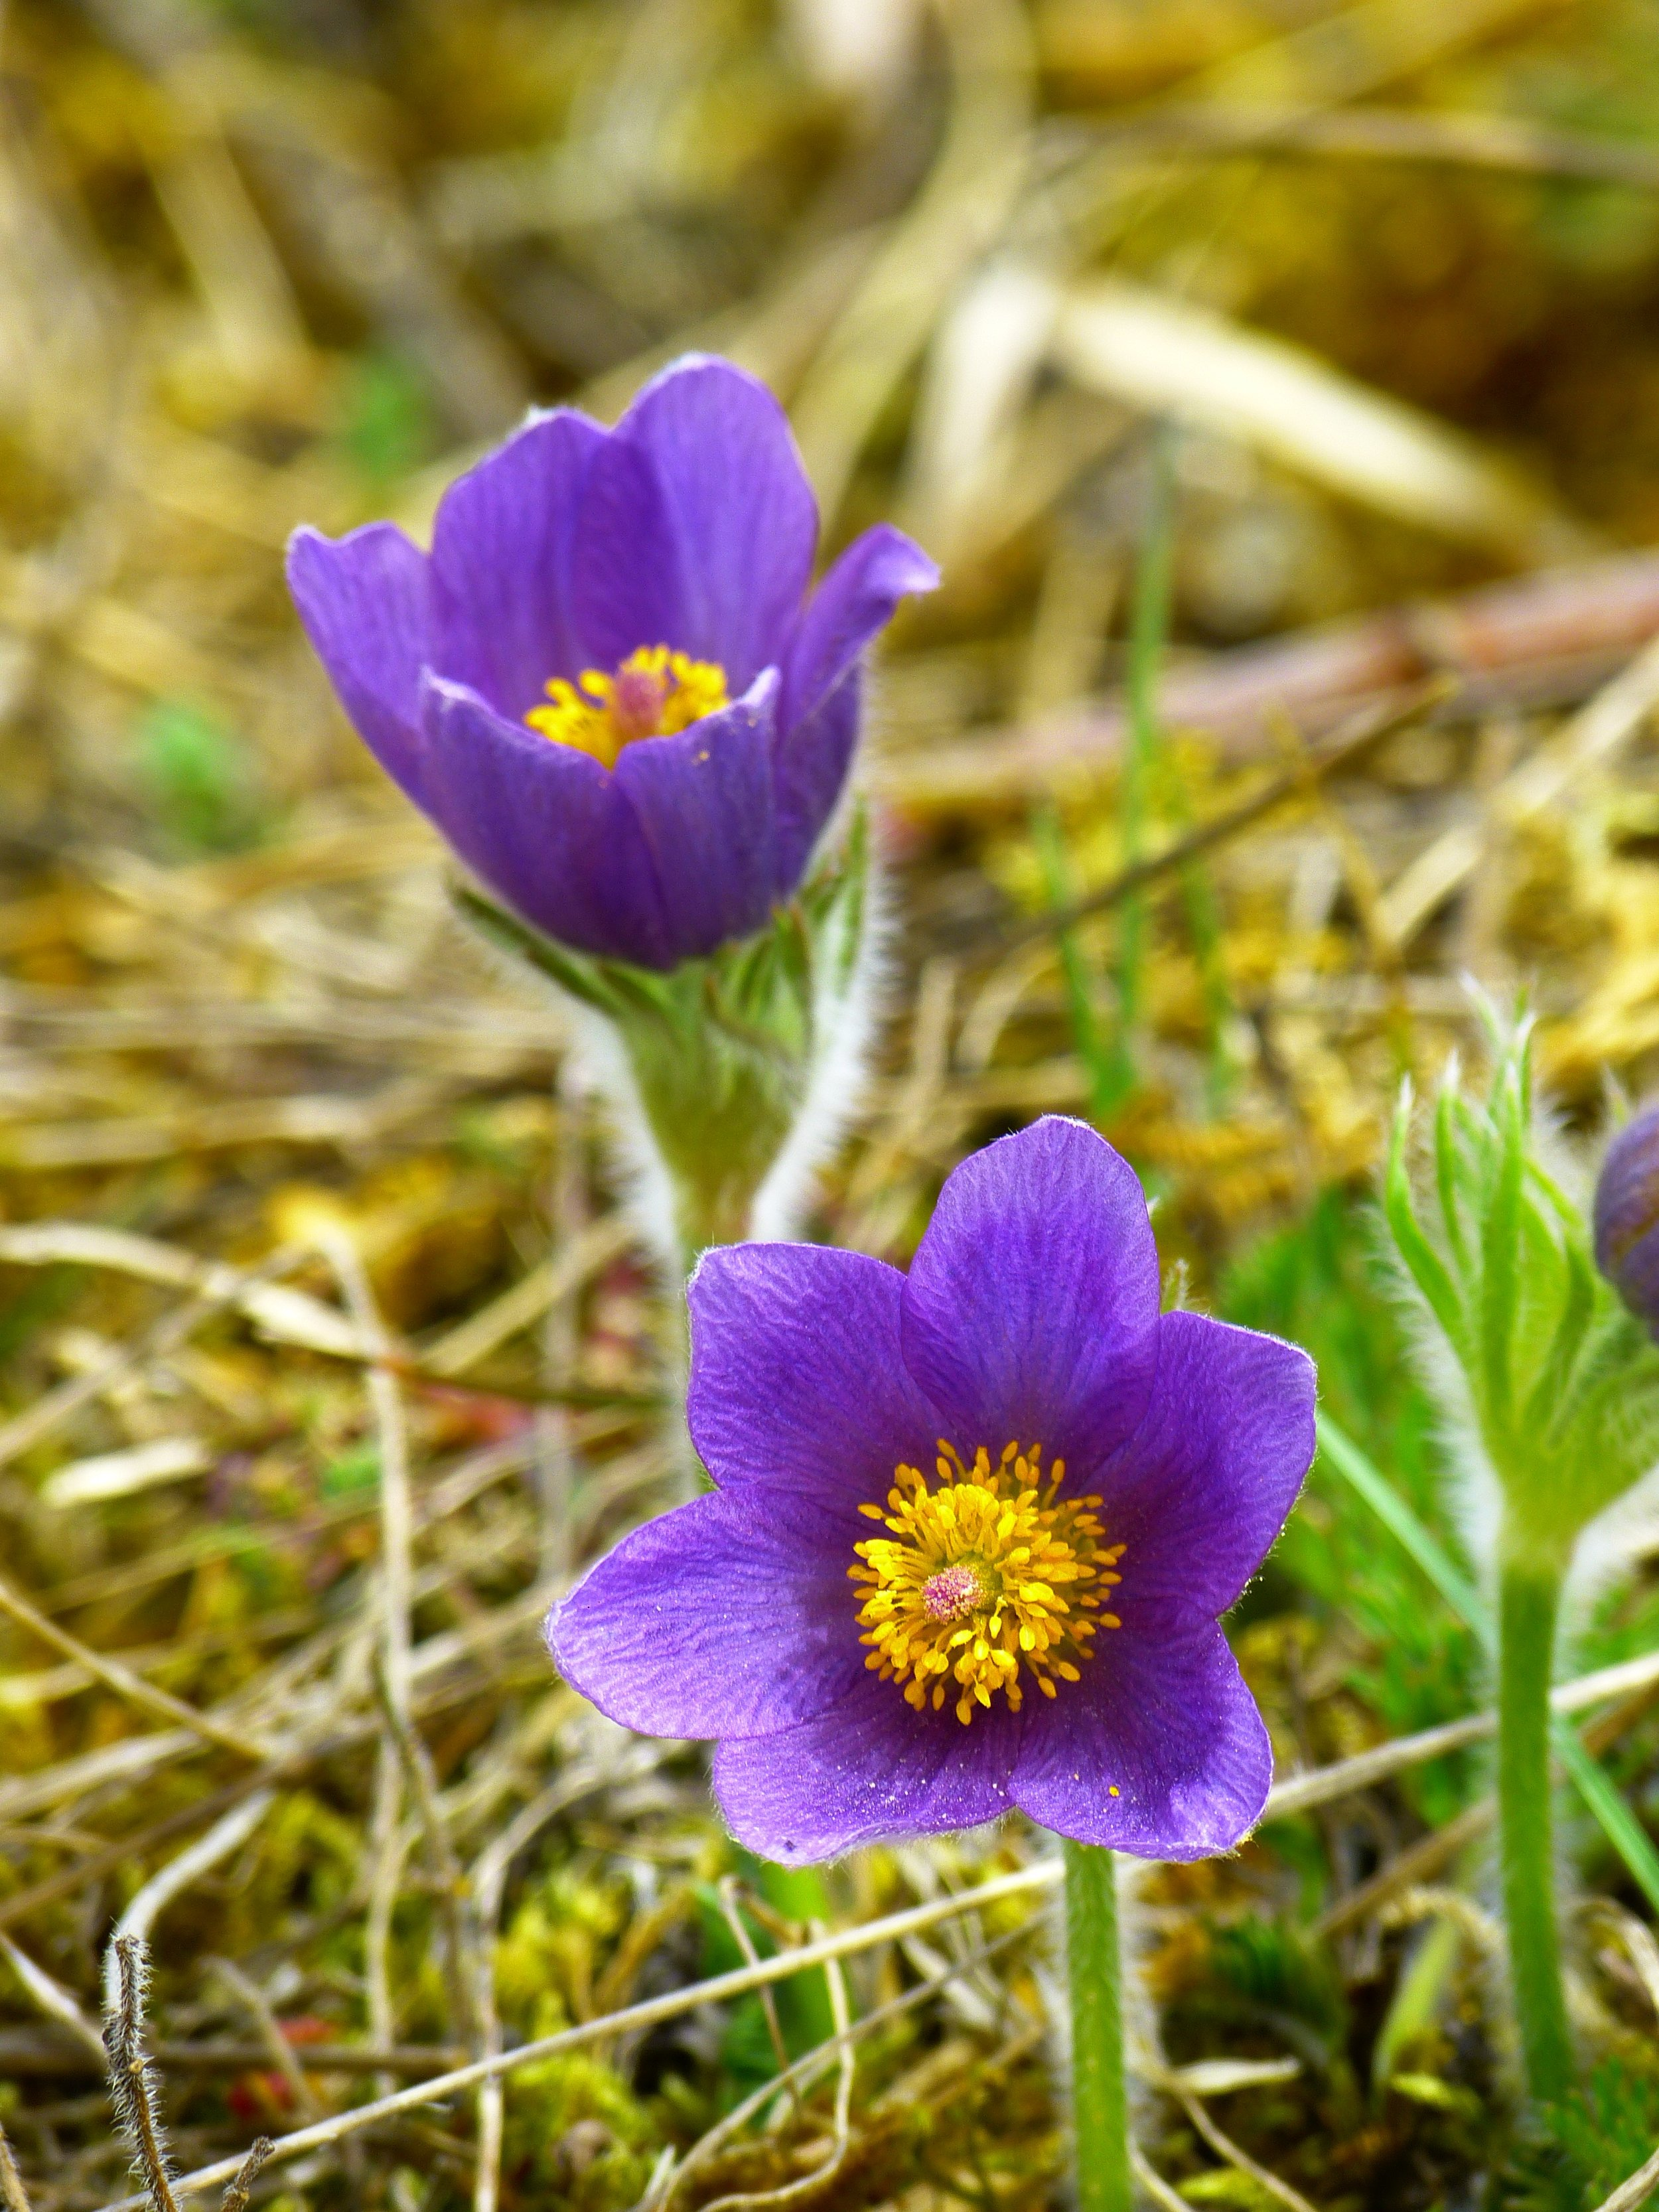 pasque-flower-blossom-bloom-flower-53532.jpg